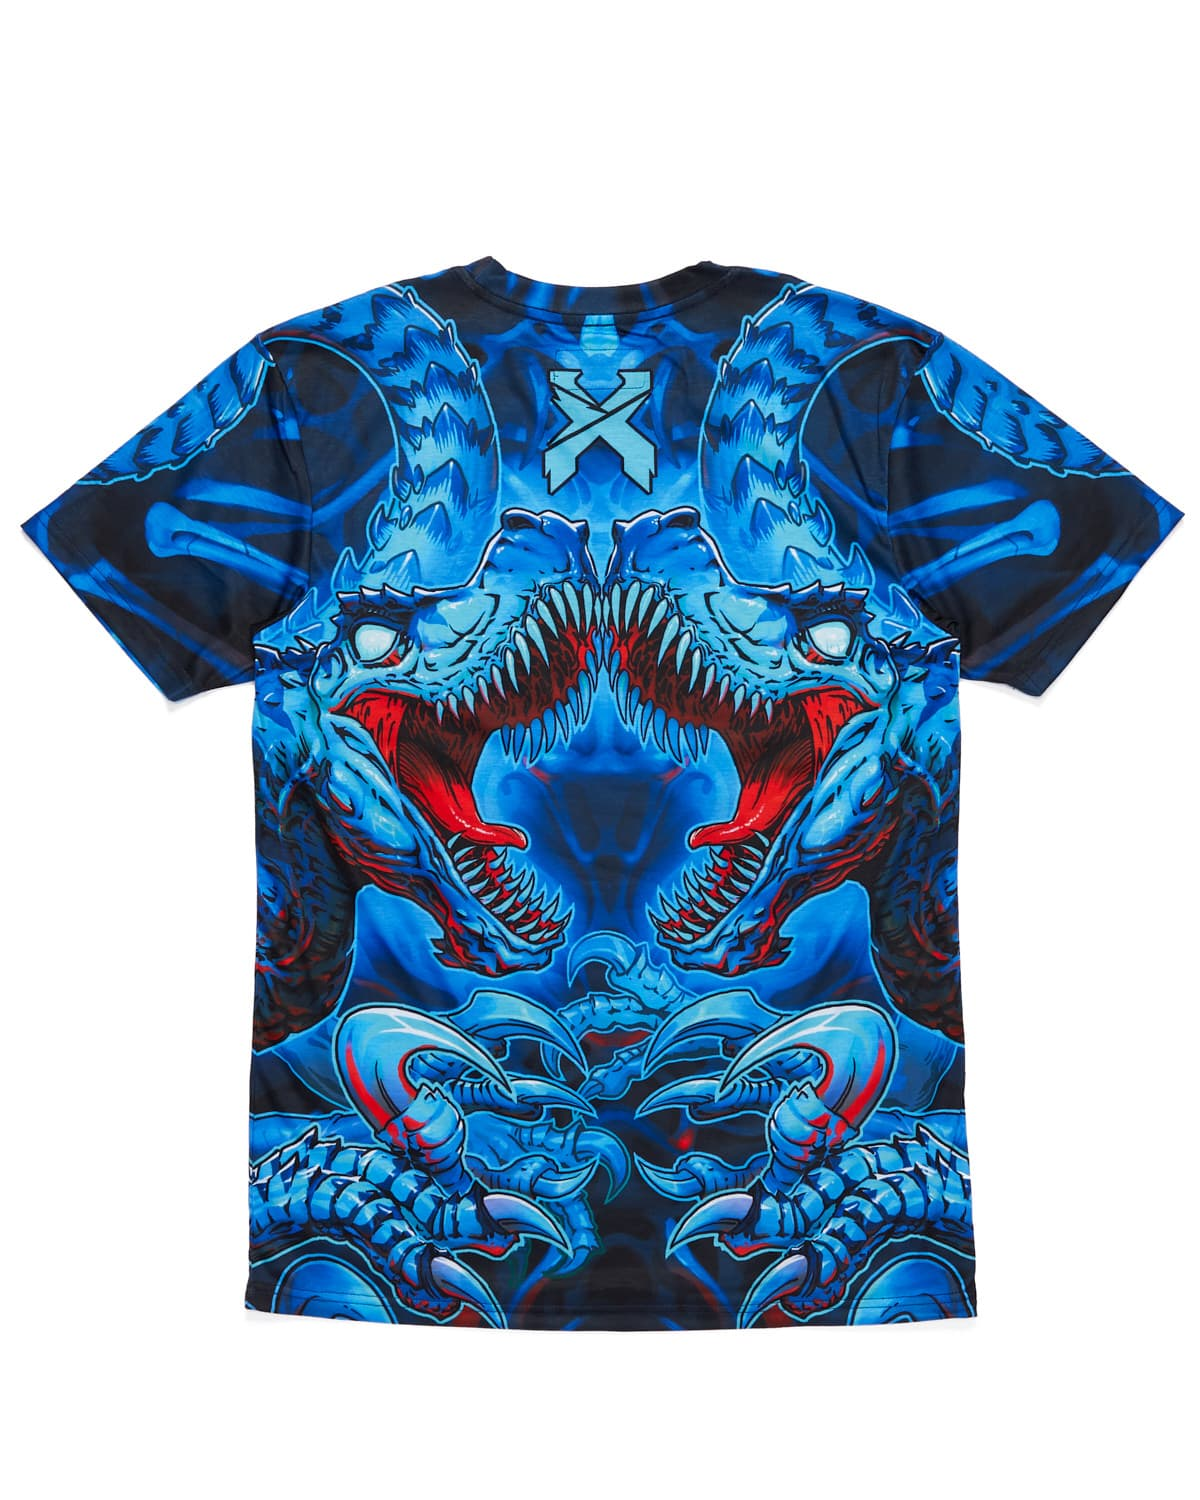 'Raptor Attack' Dye Sub Tee - Blue